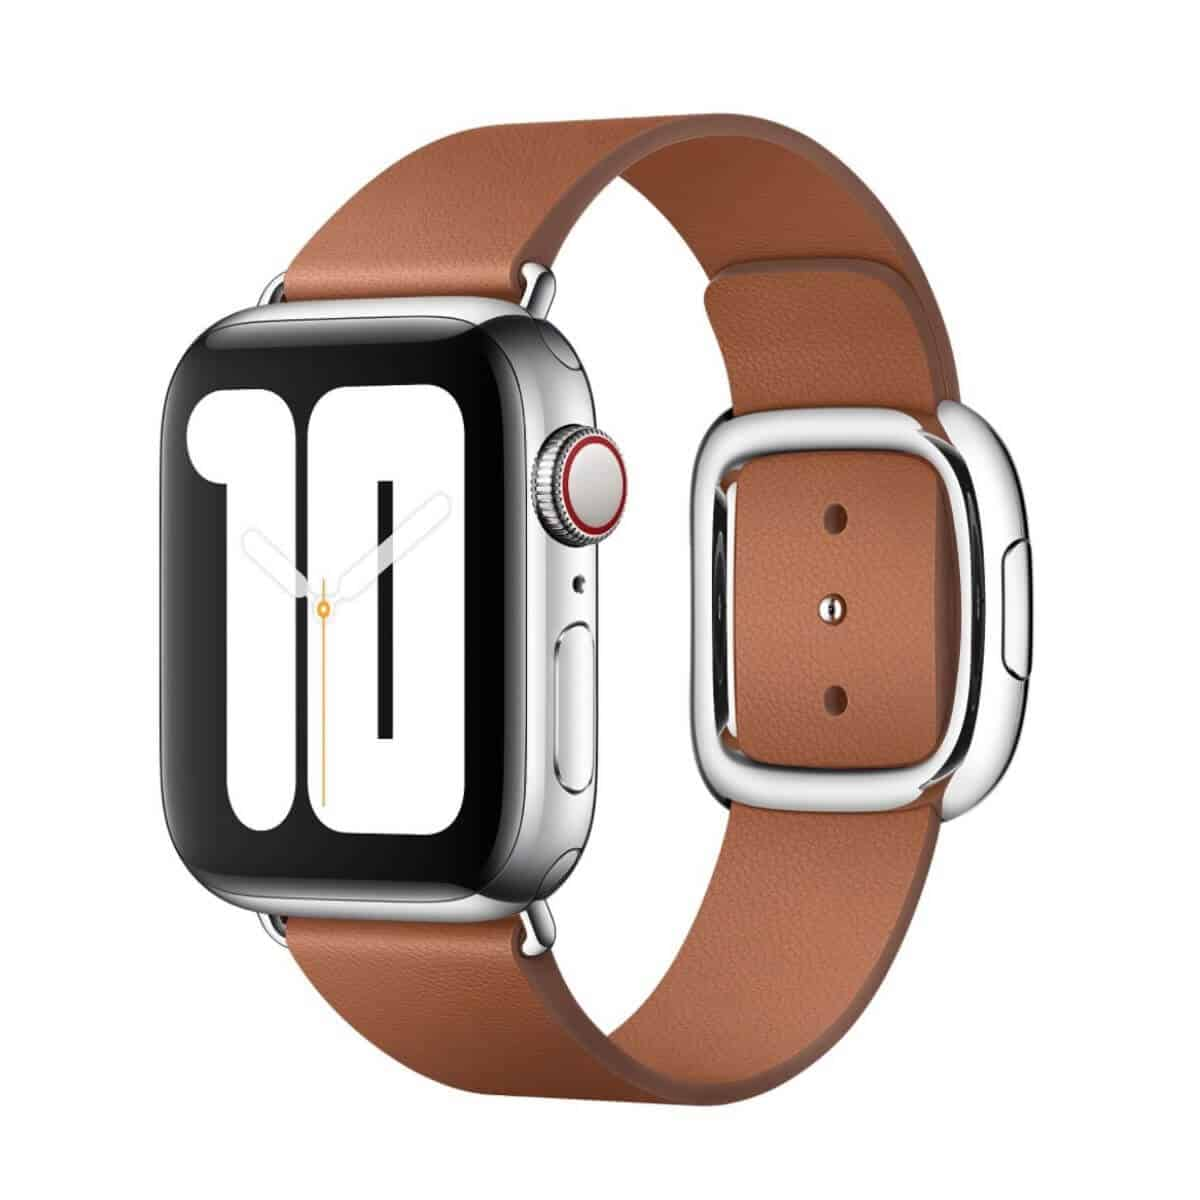 Apple Watch with a brown leather band.